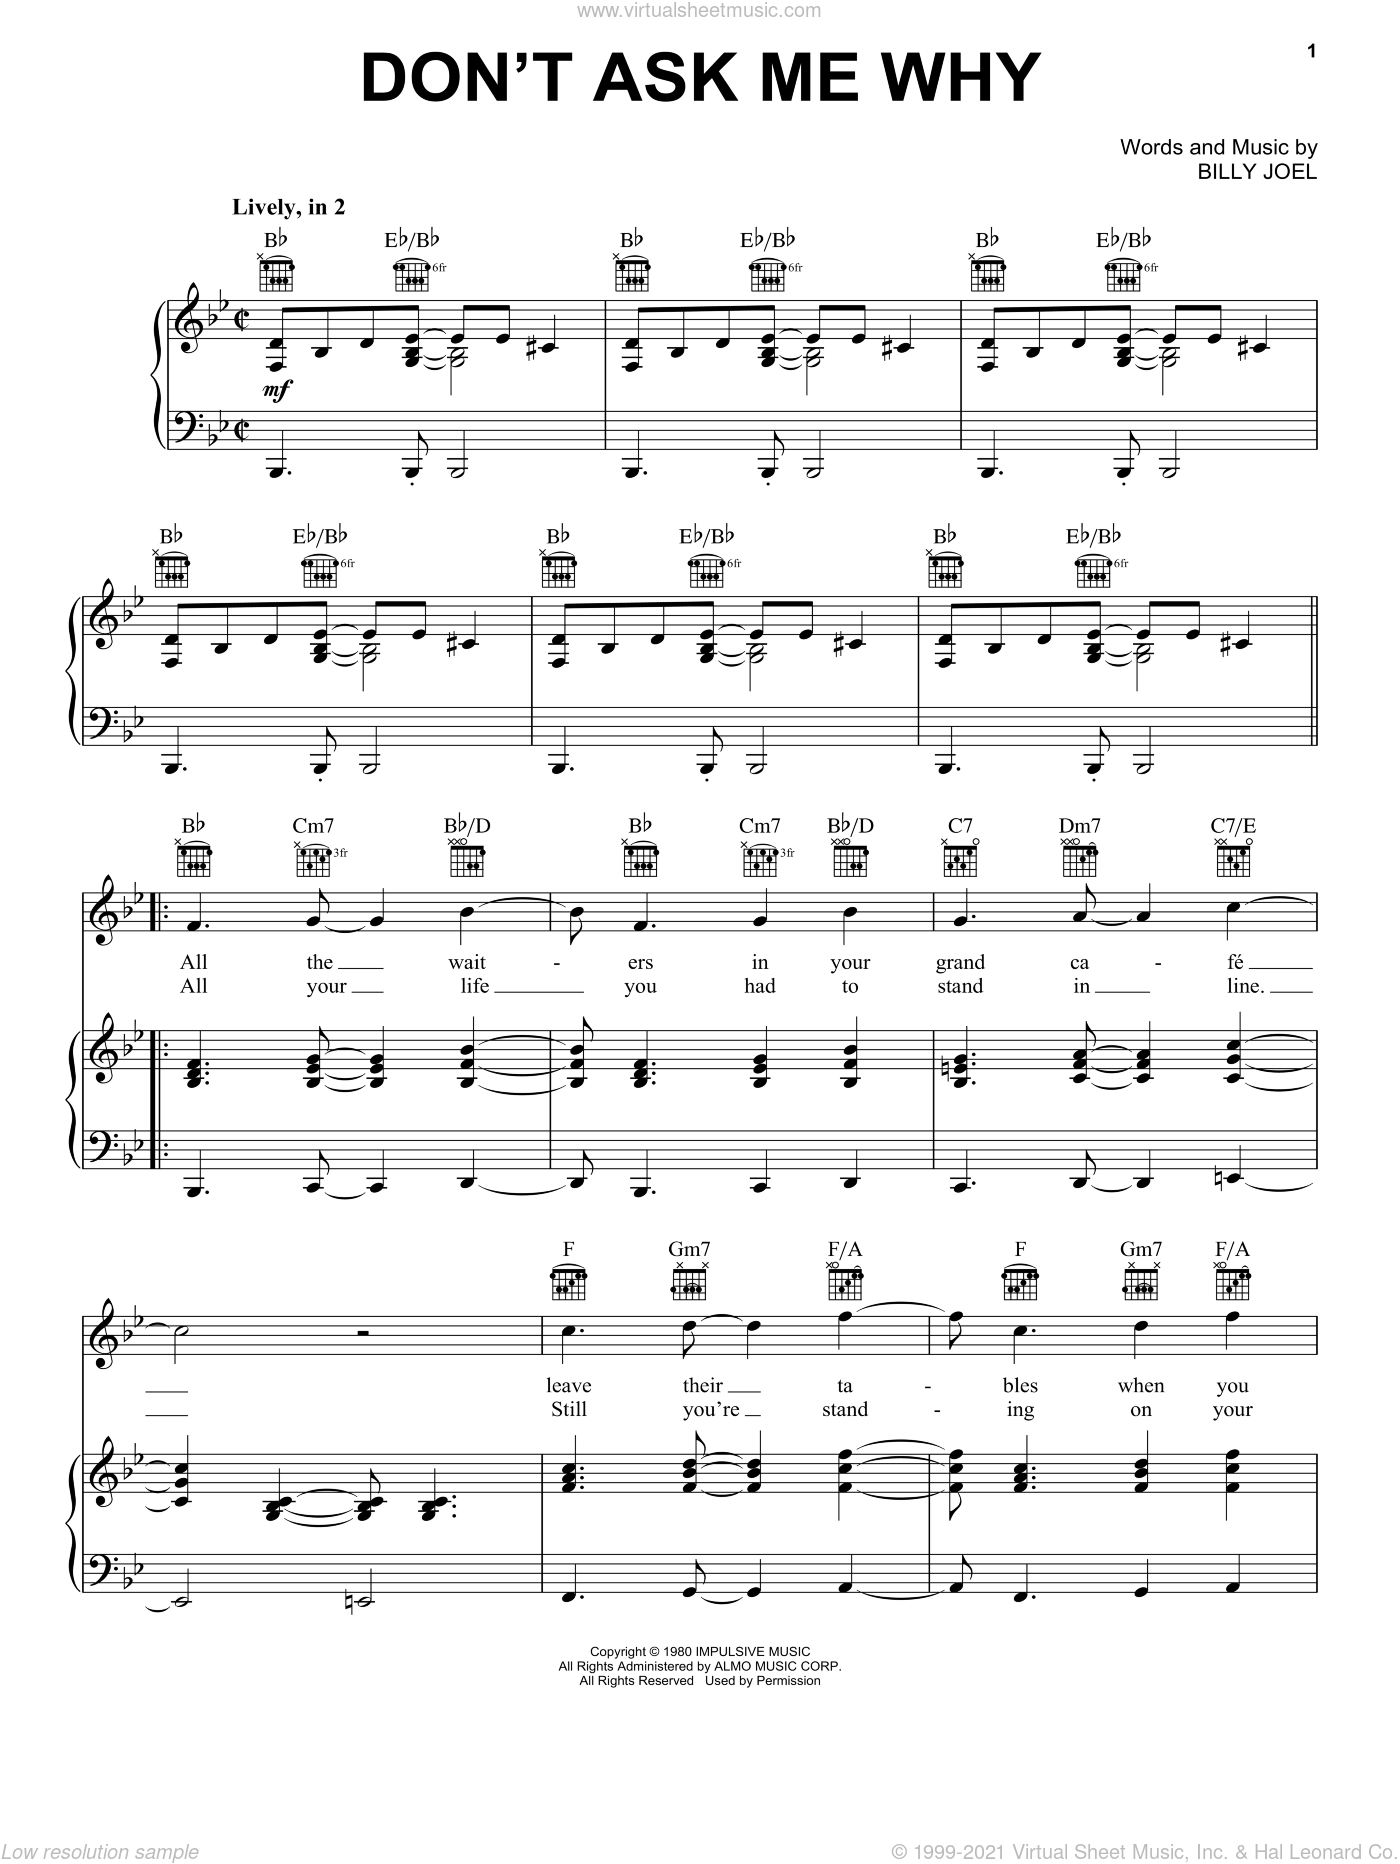 Don't Ask Me Why sheet music for voice, piano or guitar by Billy Joel. Score Image Preview.